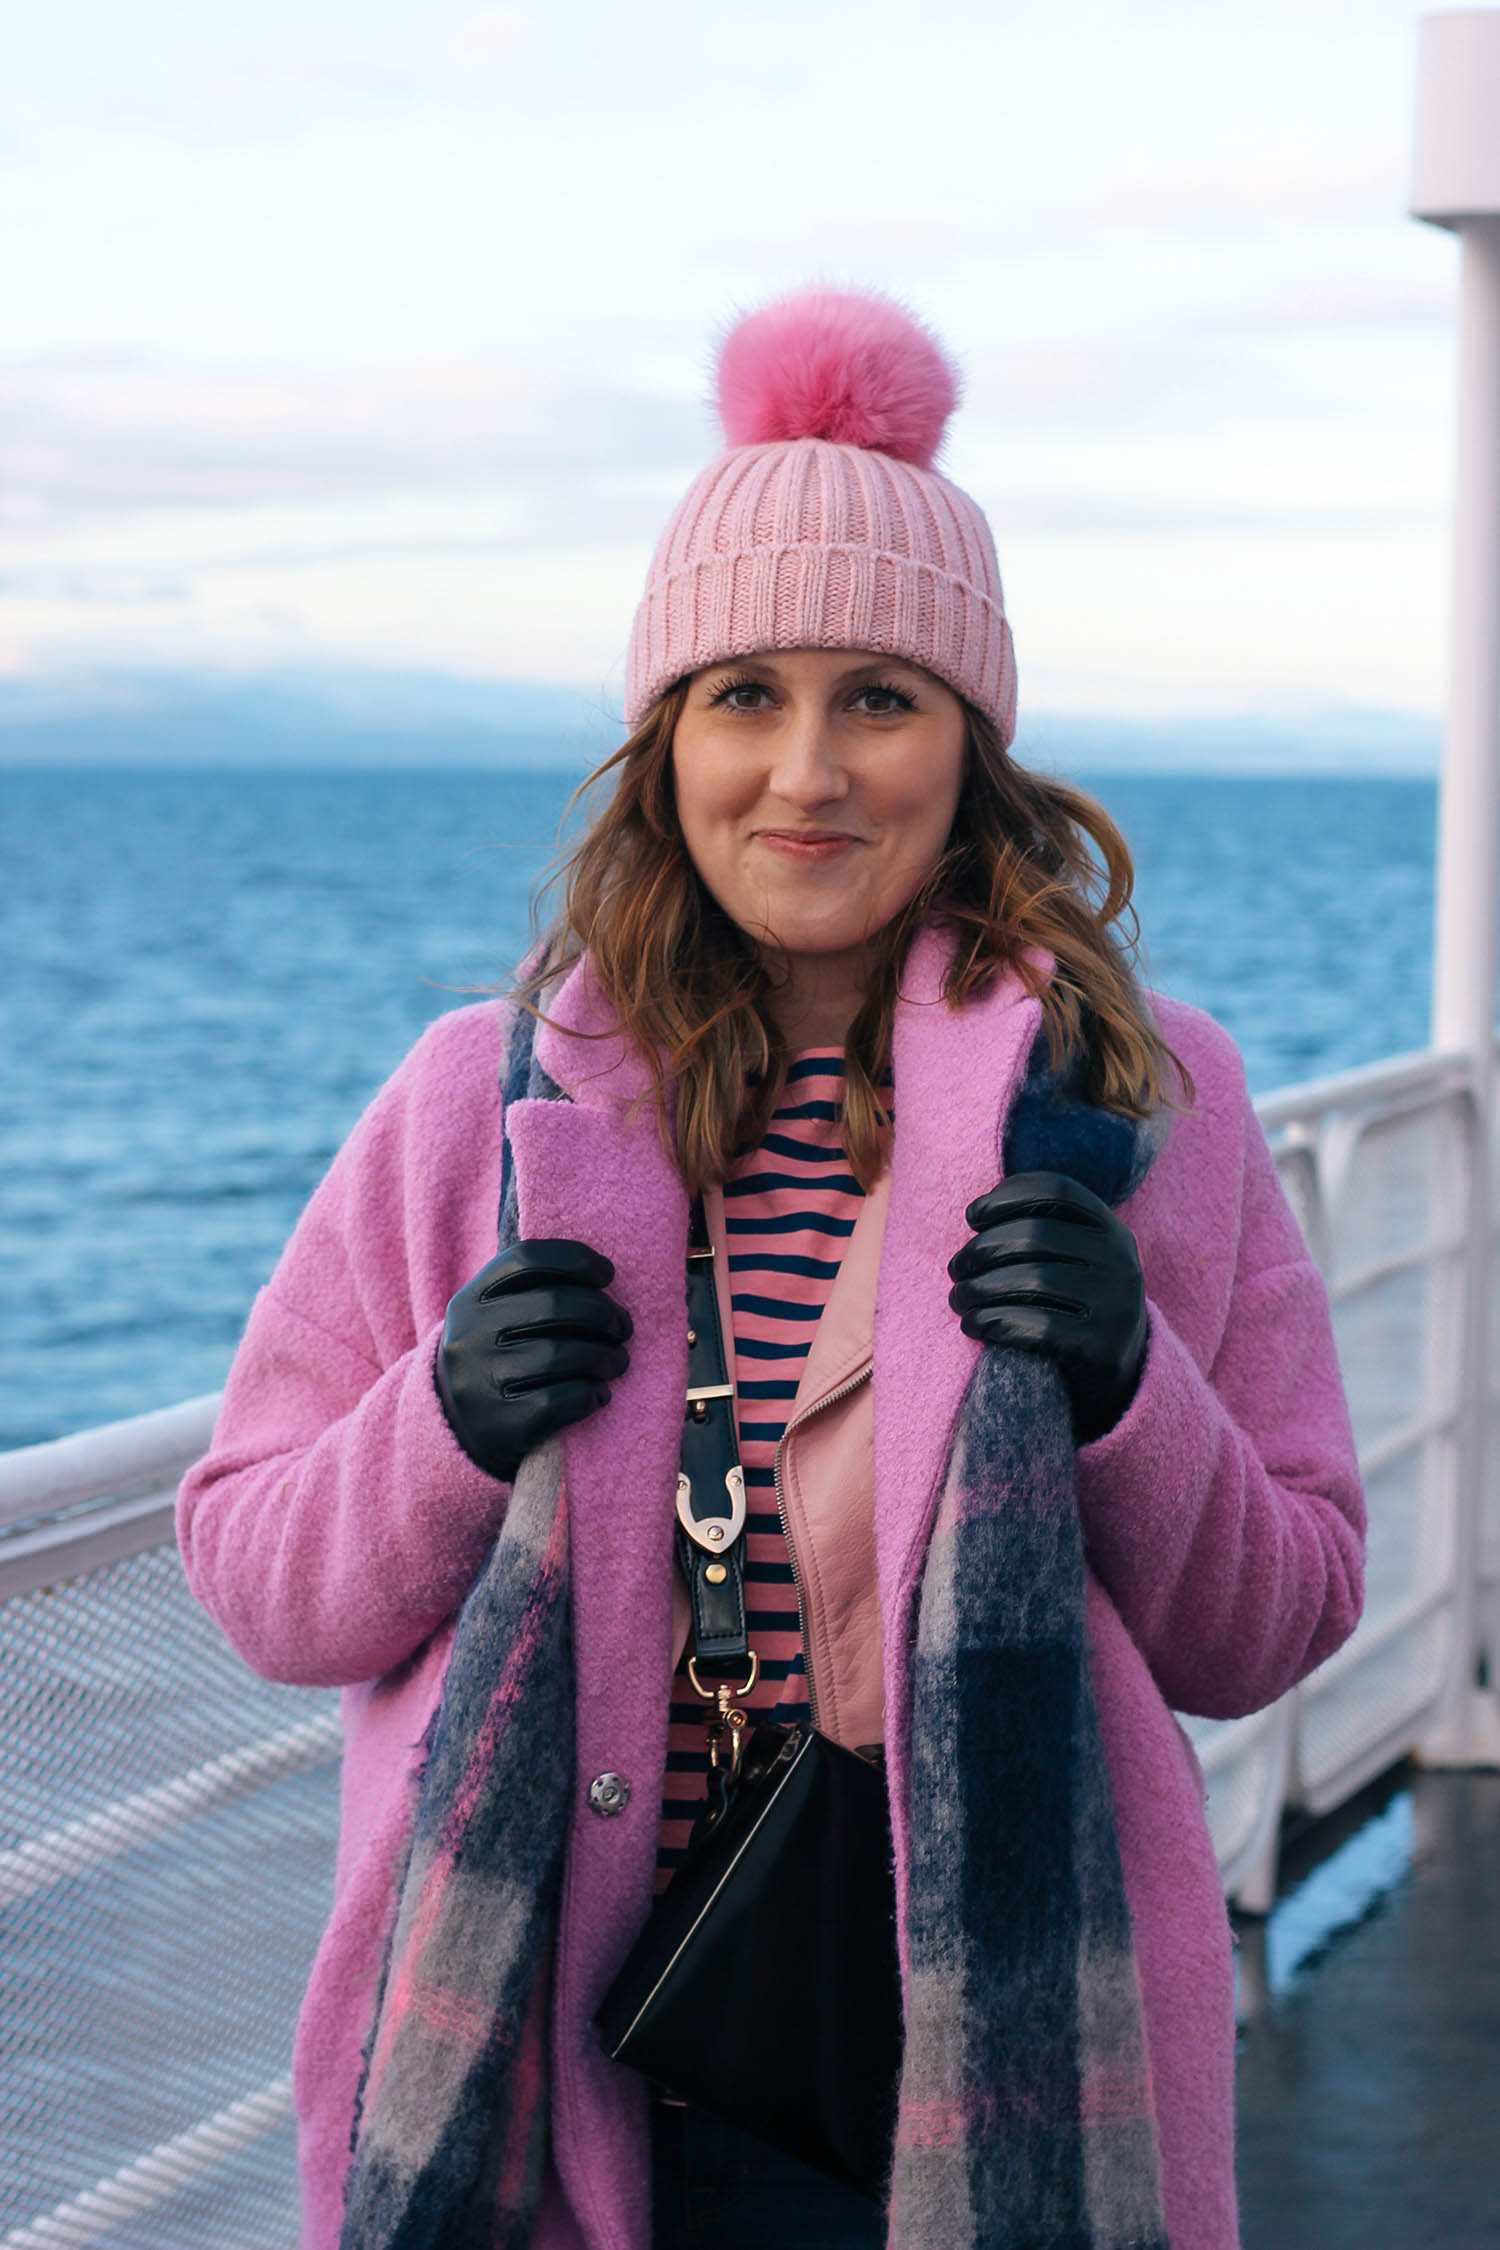 ferry-ride-pink-jacket-4